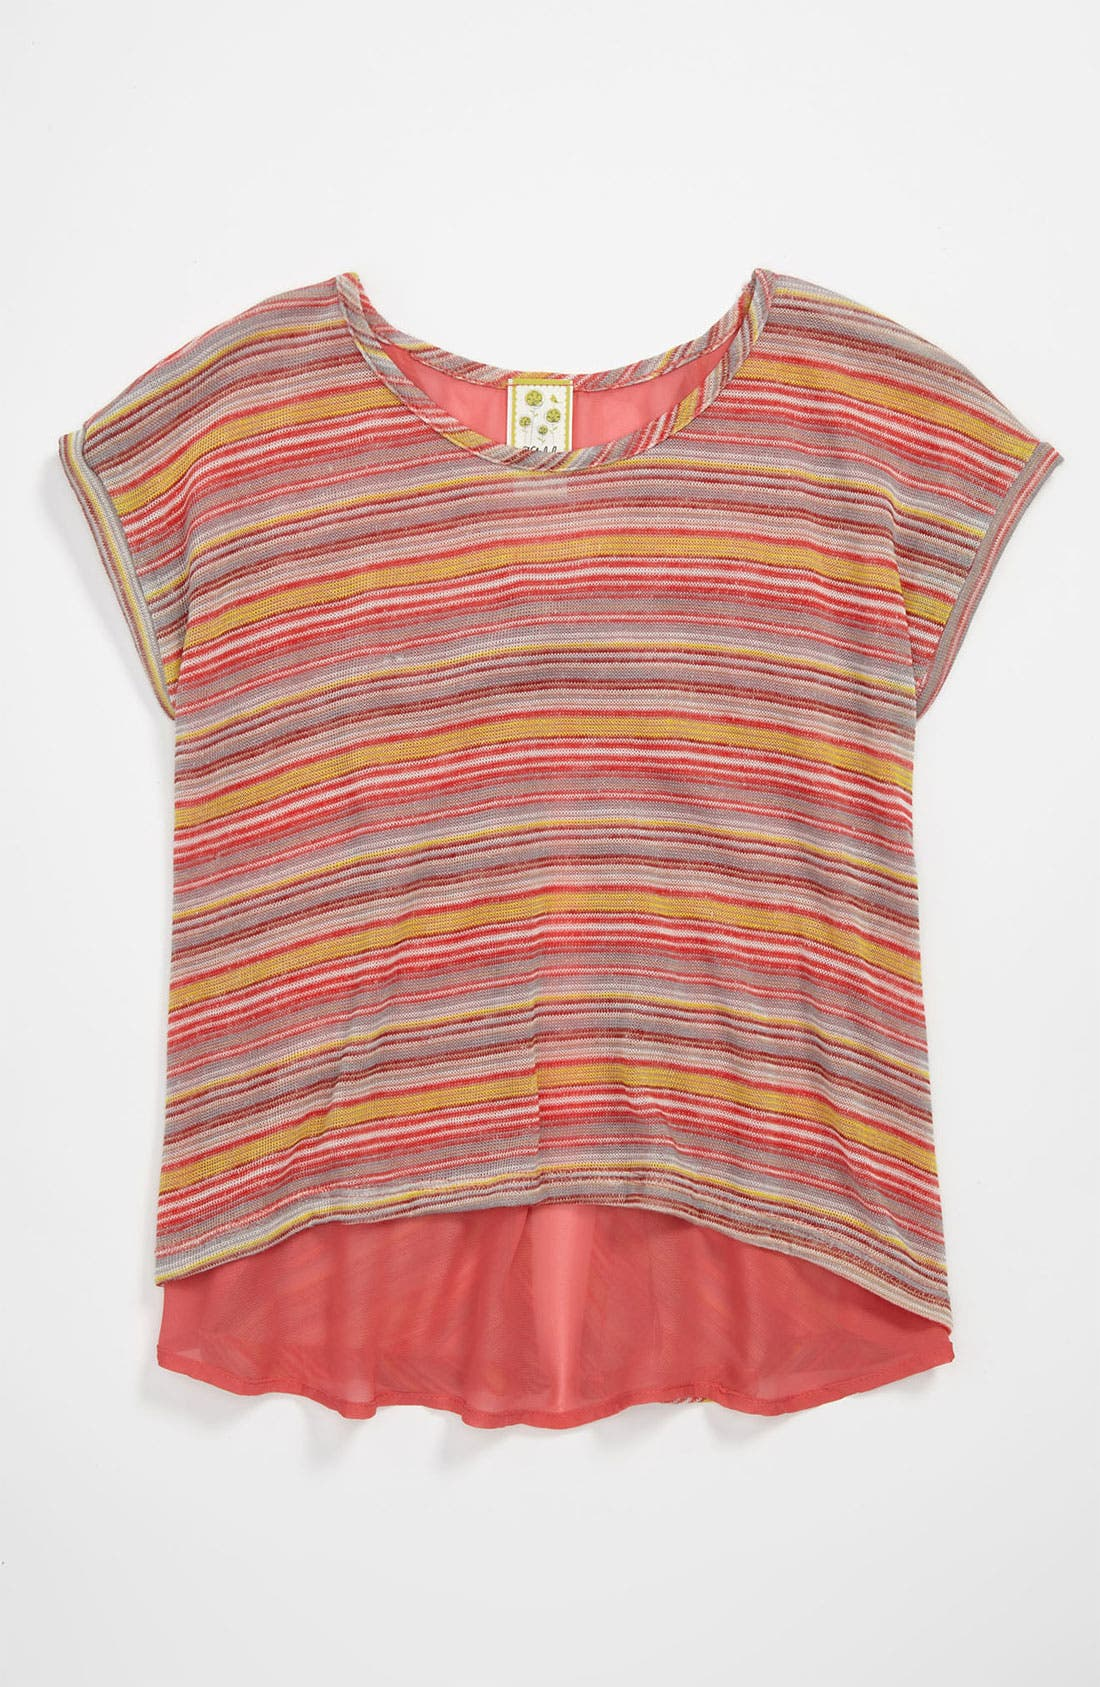 Alternate Image 1 Selected - Kiddo Stripe Top (Little Girls)